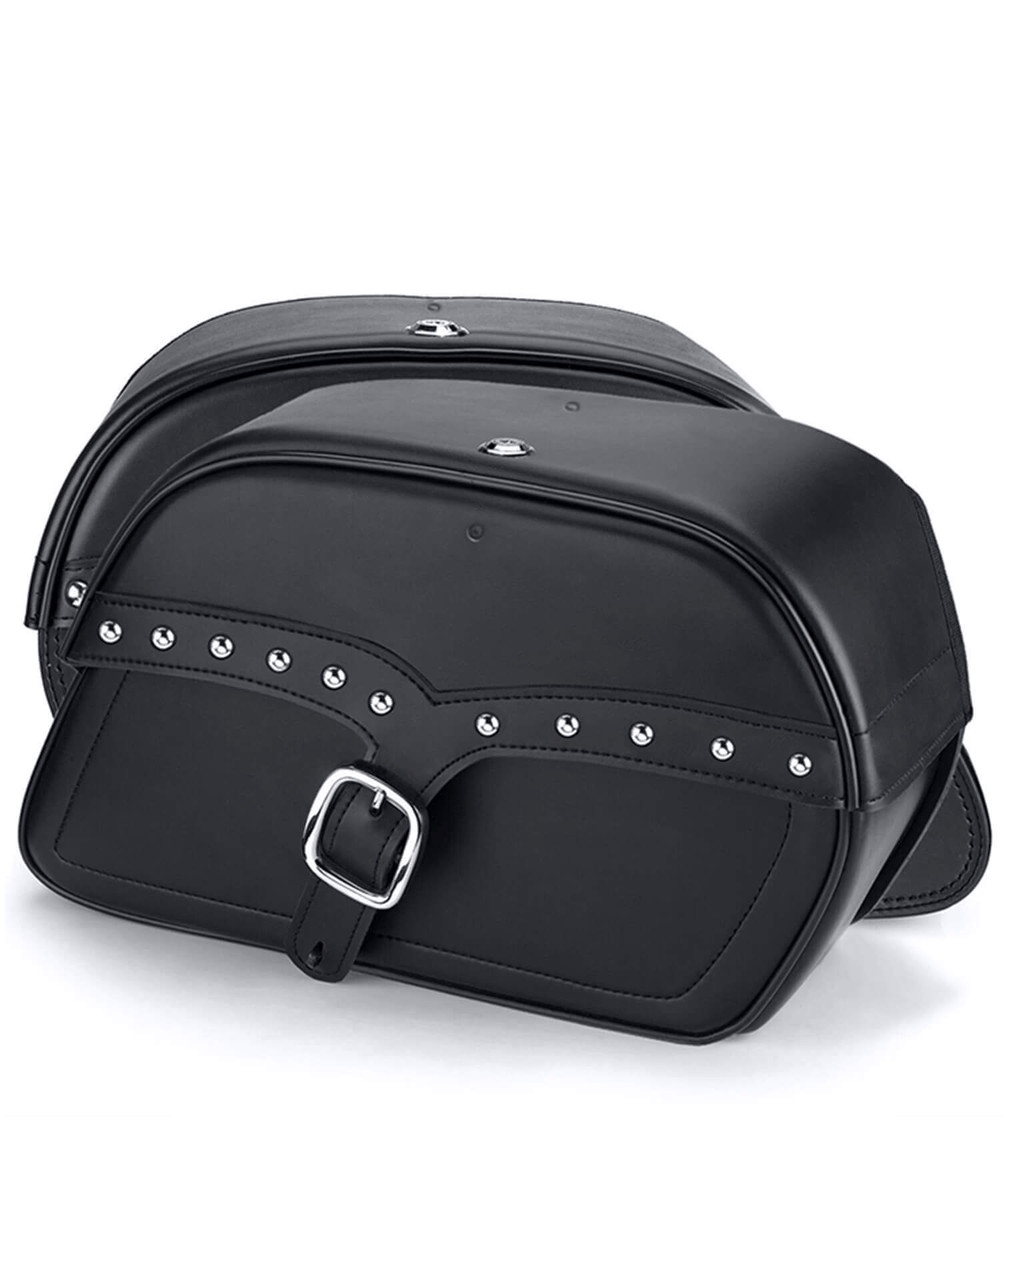 Honda 1500 Valkyrie Interstate Charger Medium Single Strap Studded Motorcycle Saddlebags Both Bags View